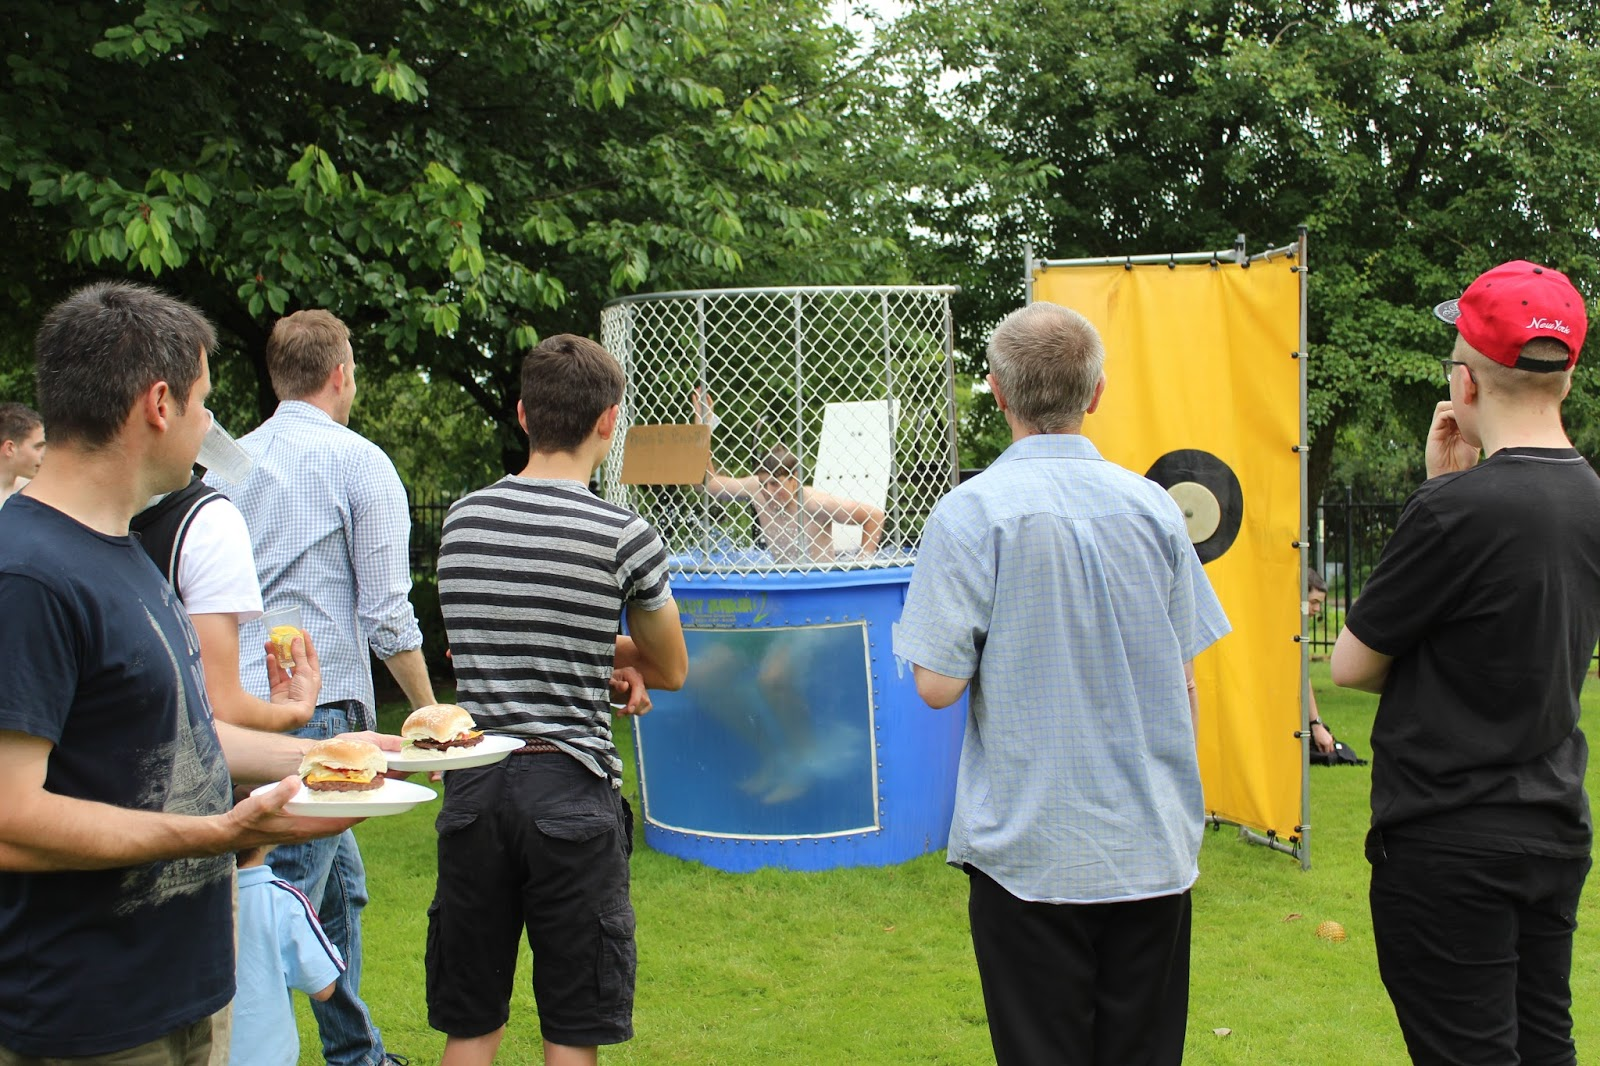 Dunking booth baptisms - Ethan Was One Of The Young Men Who Volunteered To Be Dunked In The Dunk Tank